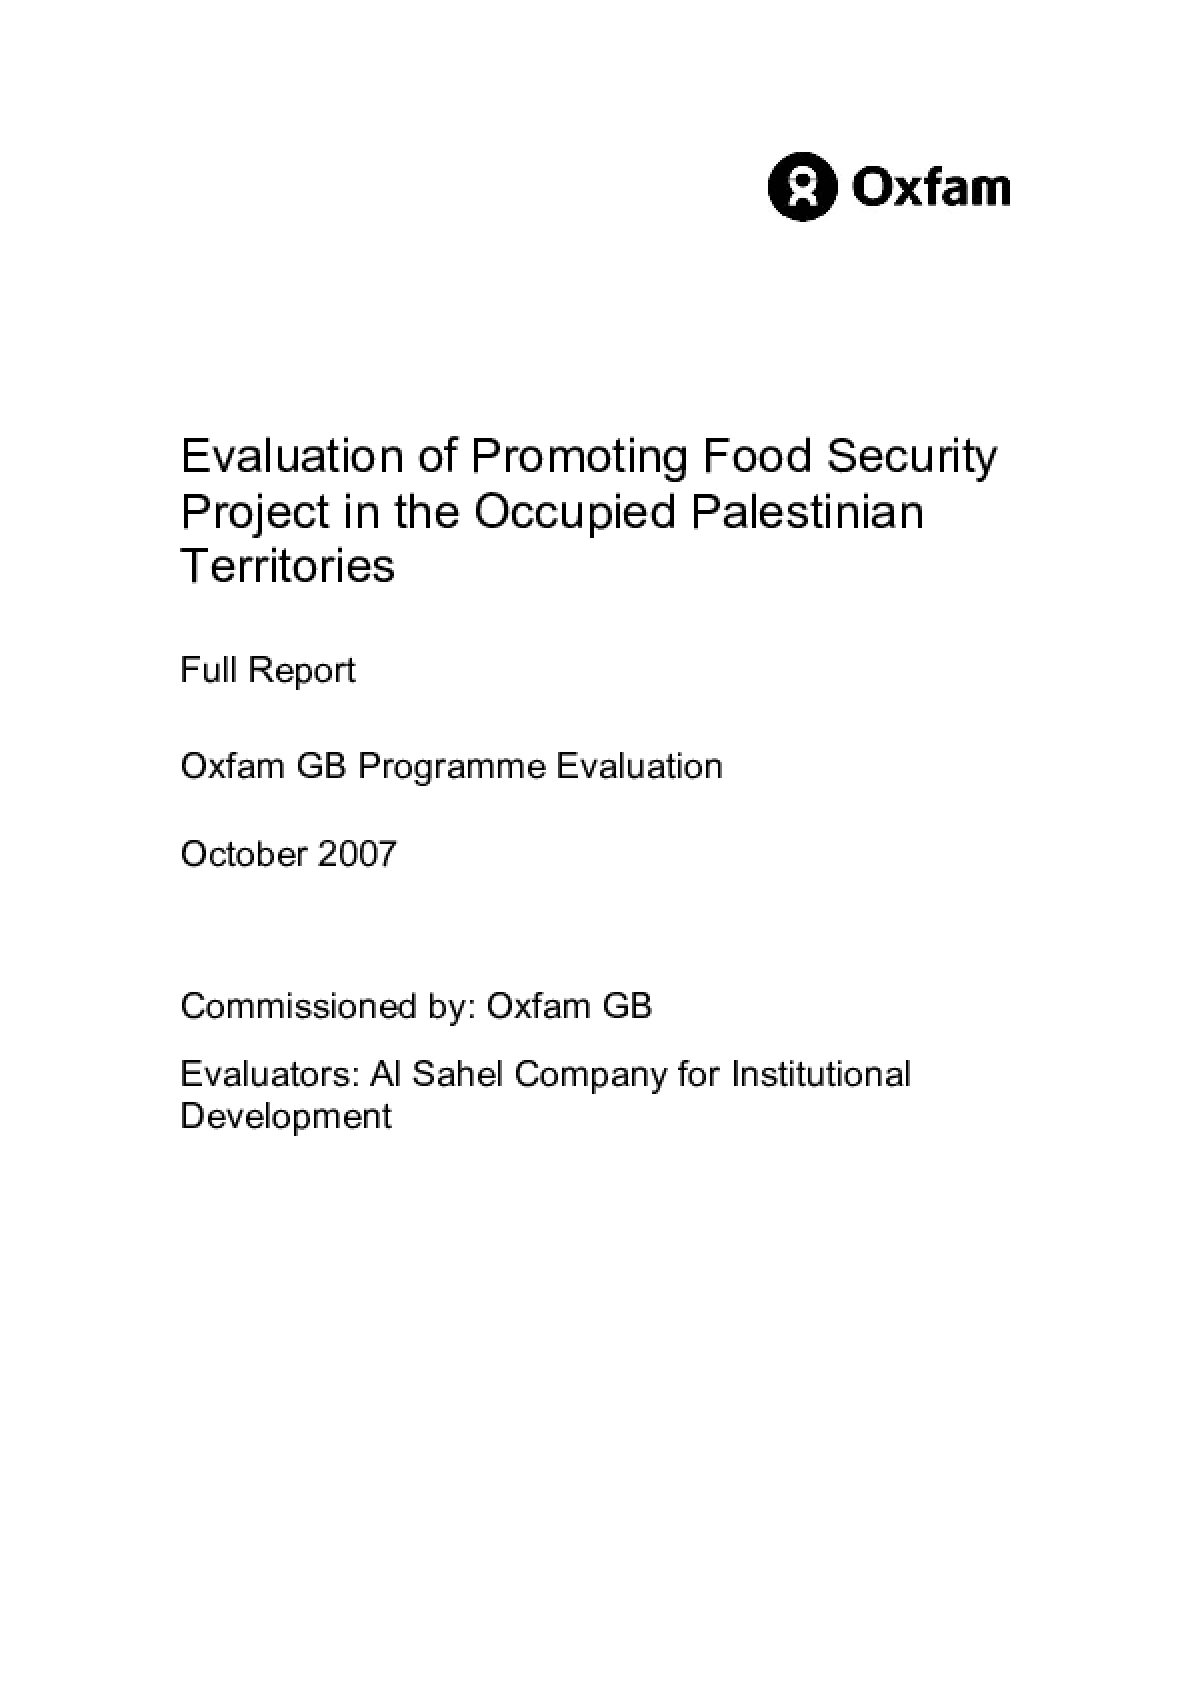 Evaluation of Promoting Food Security Project in the Occupied Palestinian Territories